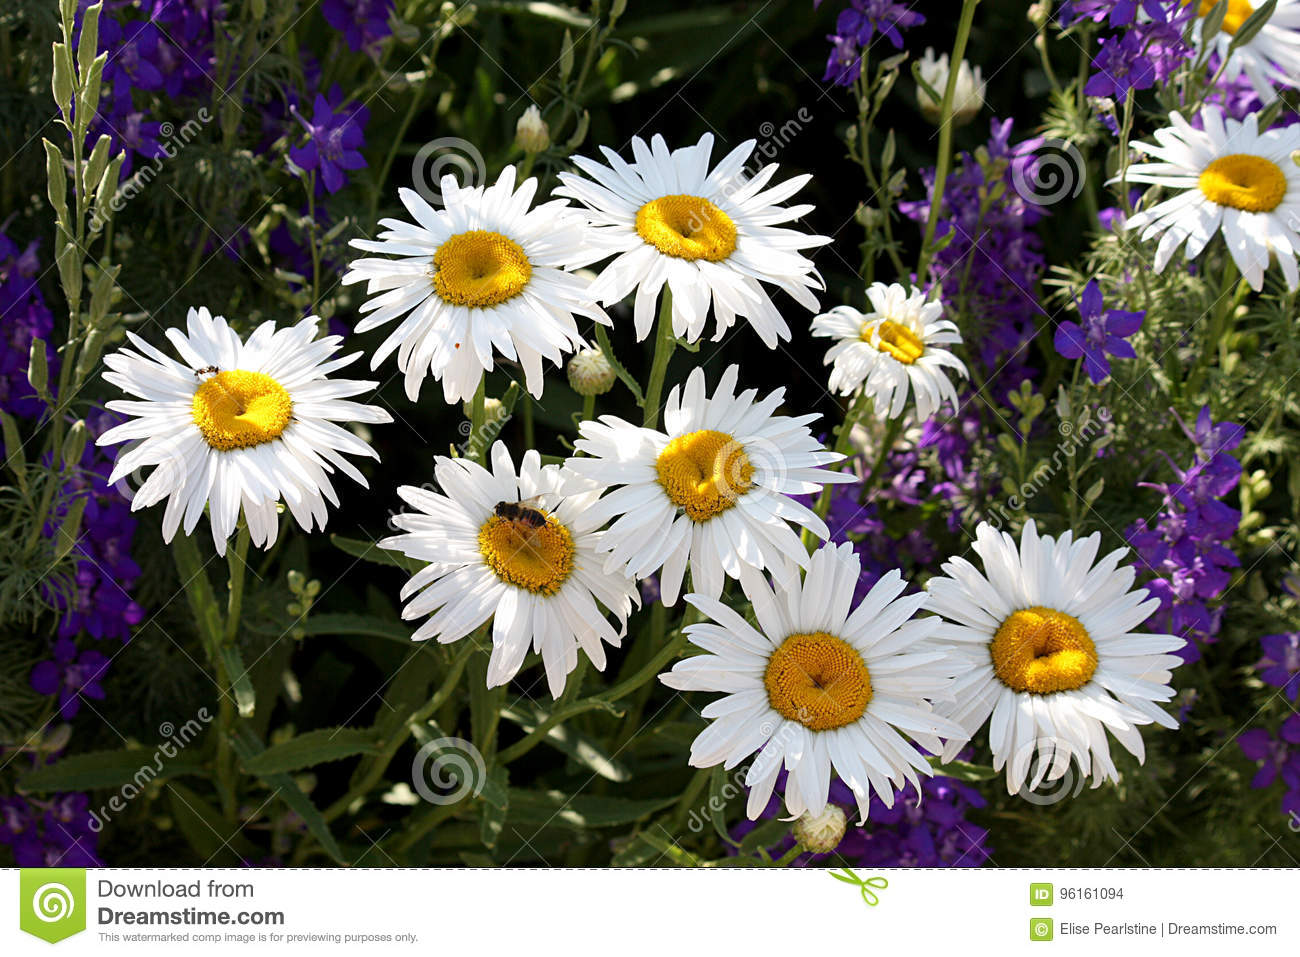 White daisies in a bunch with purple spike flowers stock photo white daisy type composite flowers with purple spike flowers in the background and a pollinator izmirmasajfo